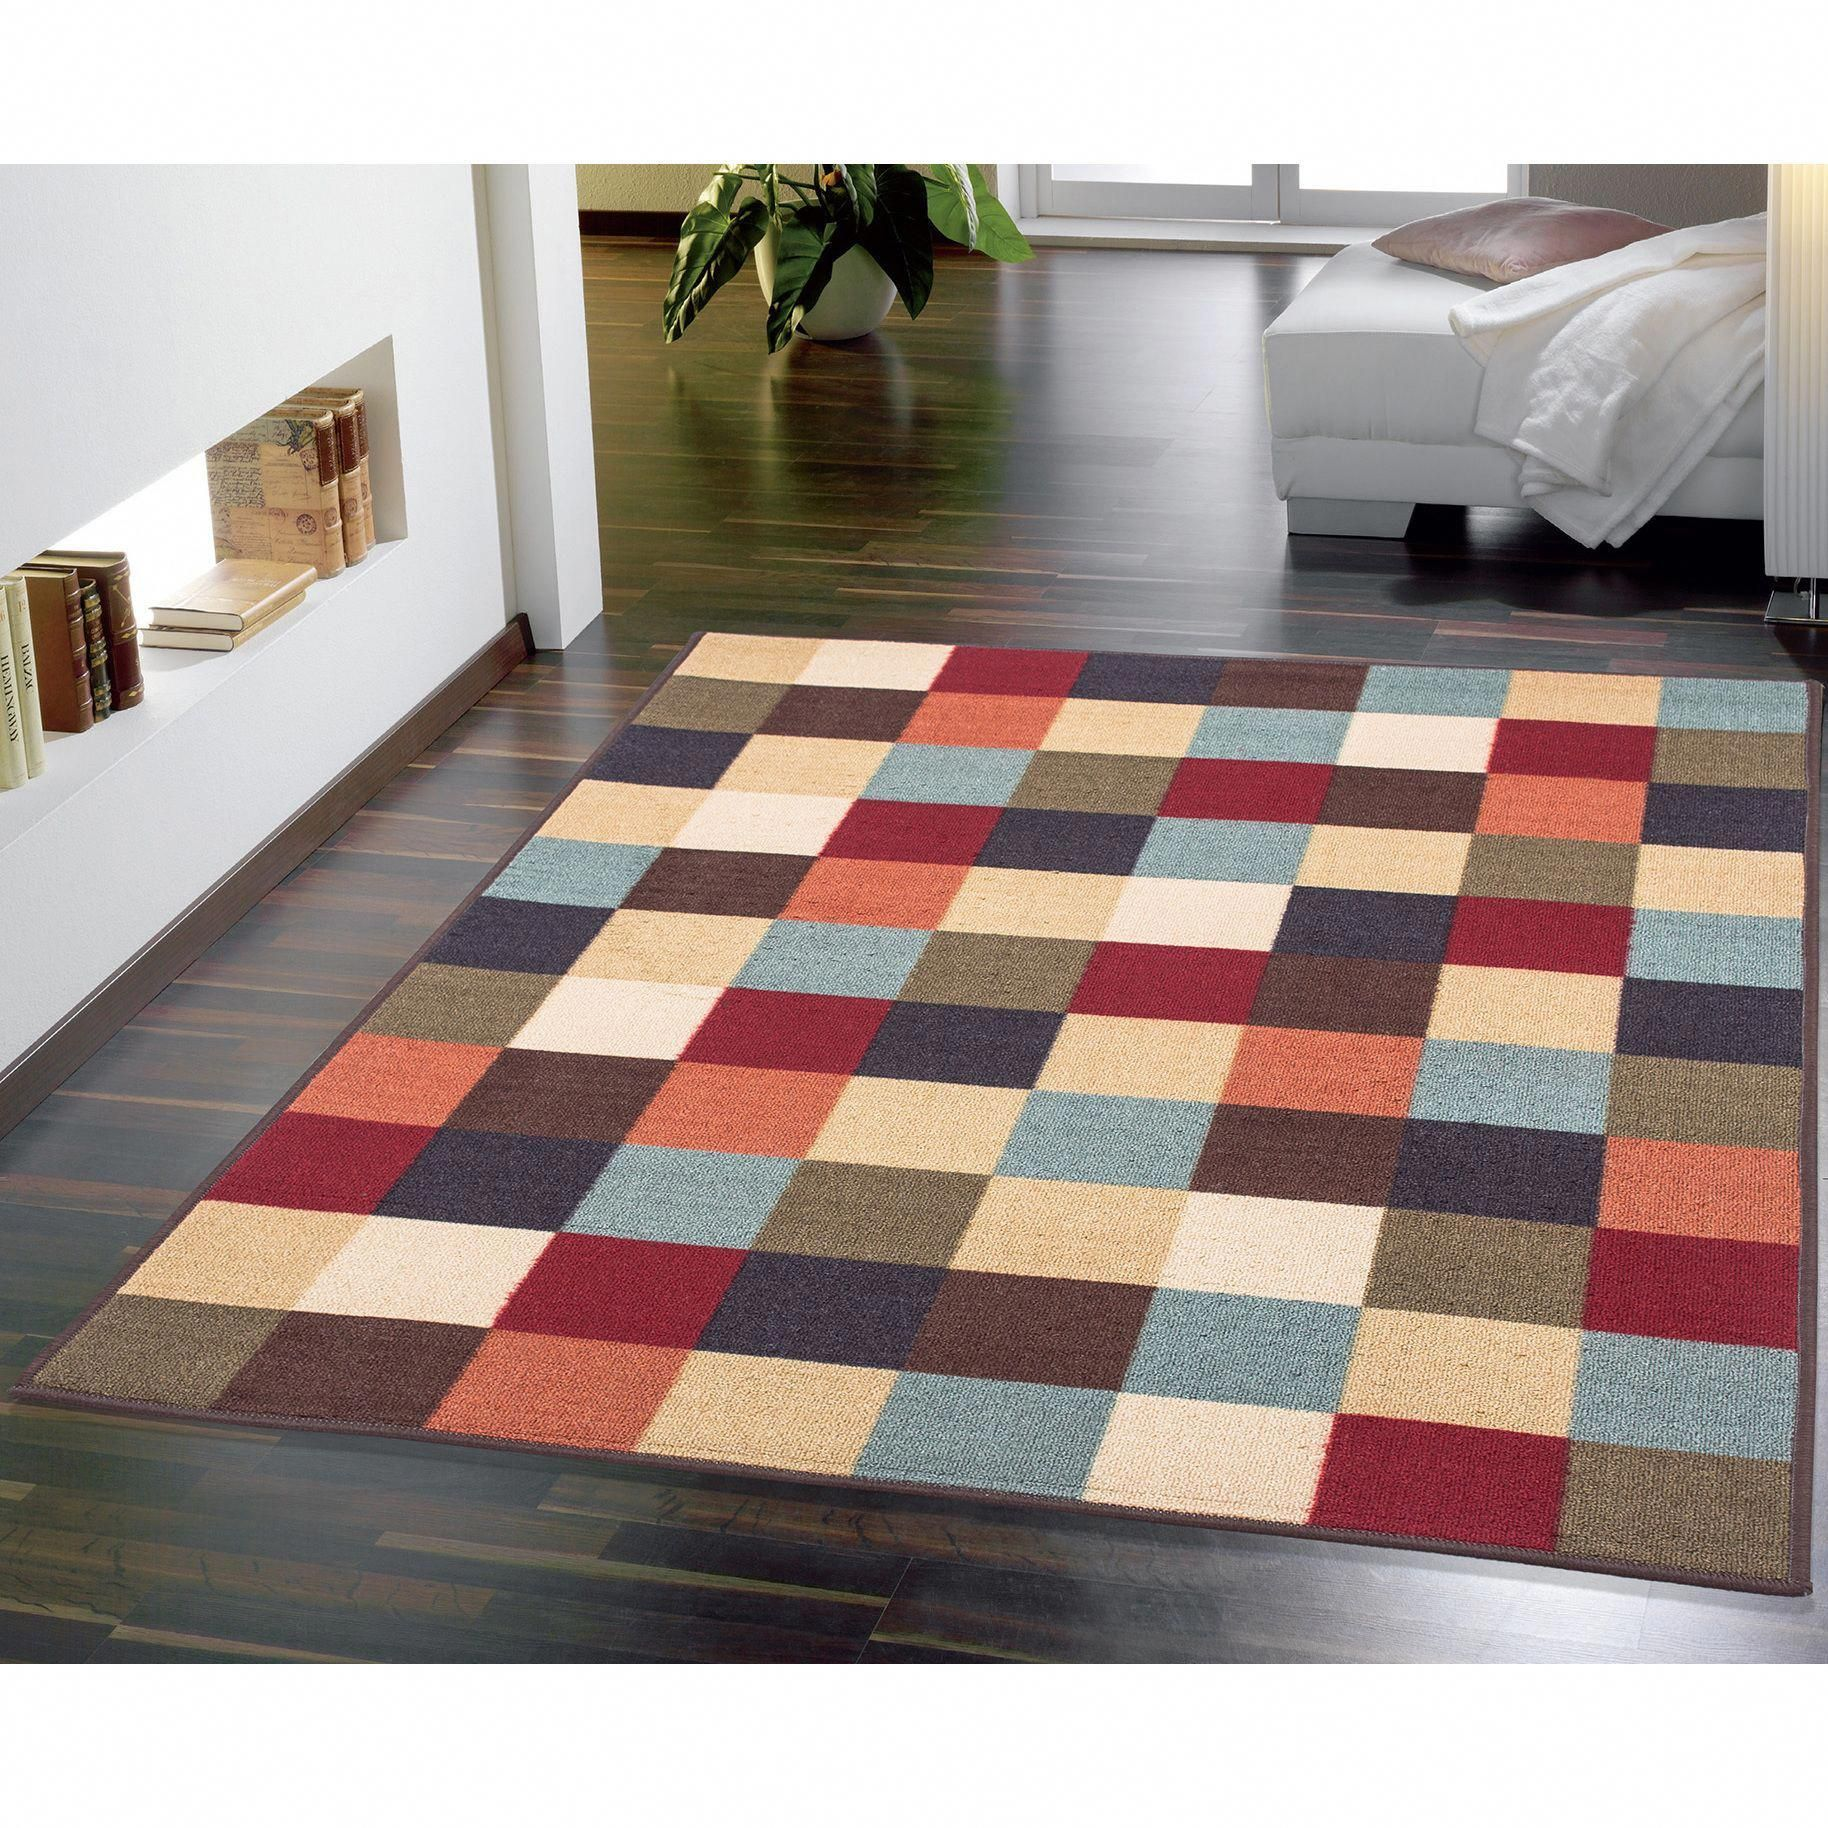 Carpet Runners Rubber Backed Staircarpetrunnersebay Contemporary Area Rugs Modern Area Rugs Area Rugs